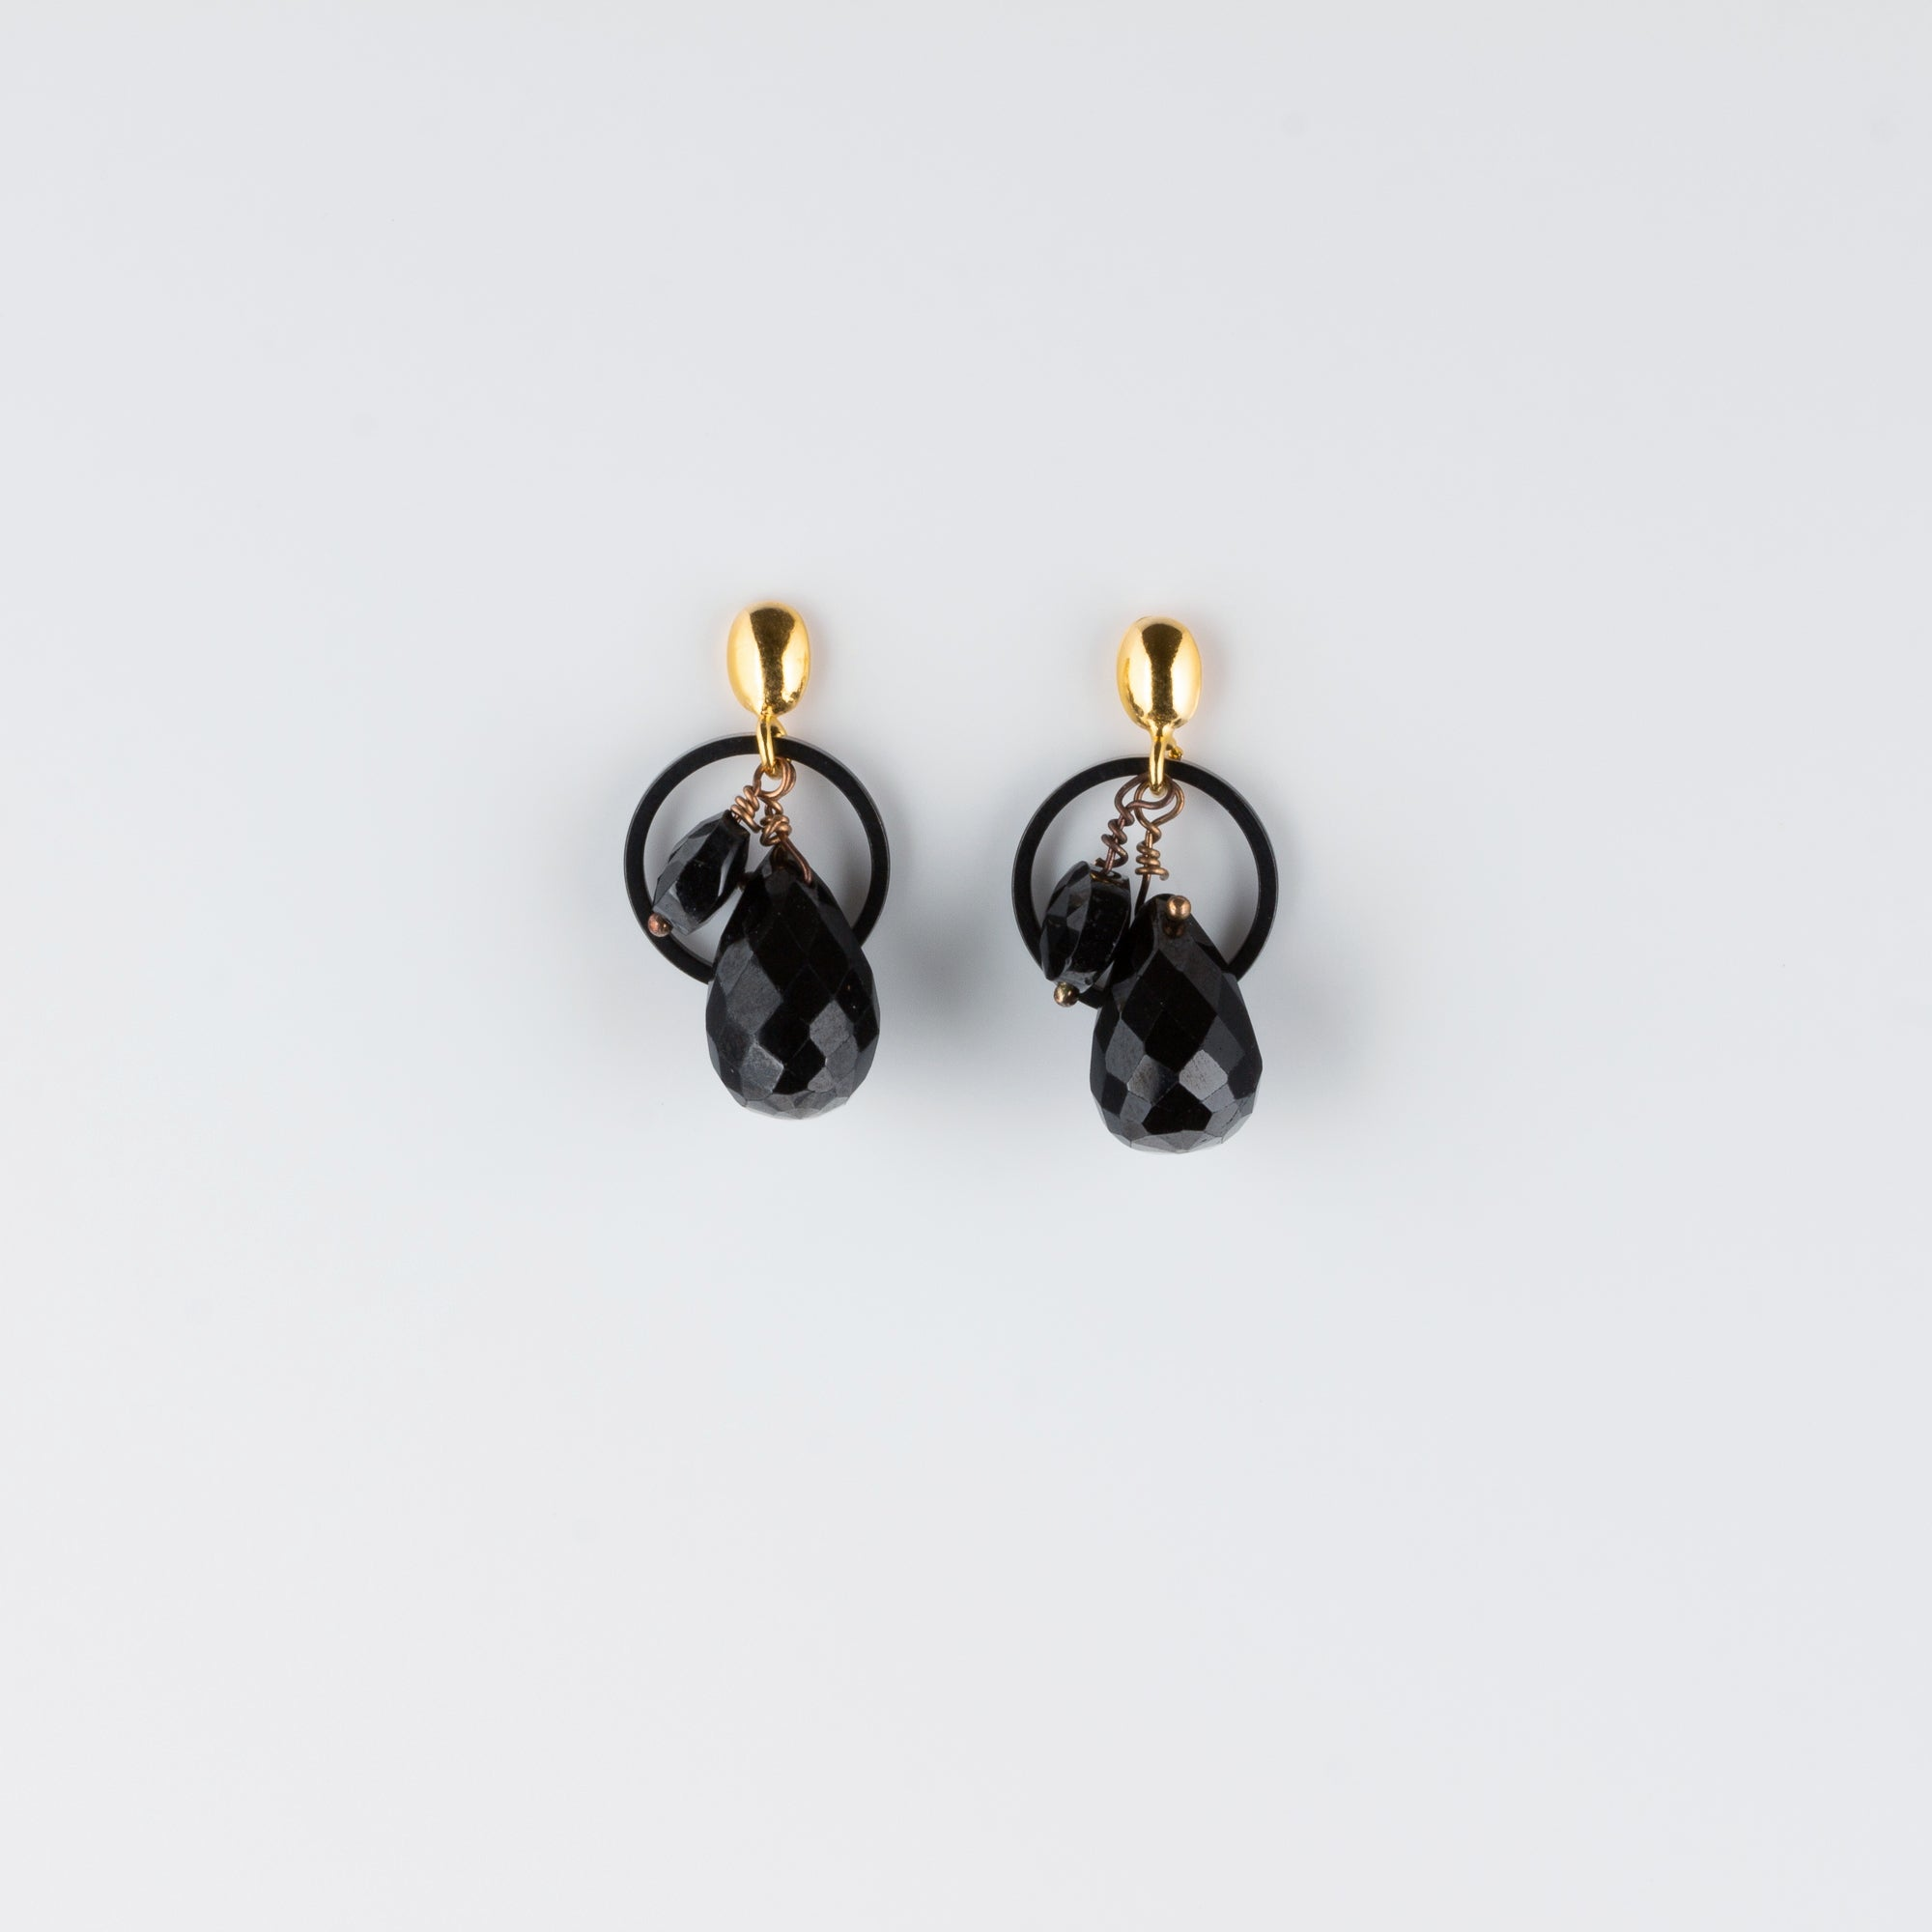 VERMEIL POST EARRINGS // BLACK SPINEL